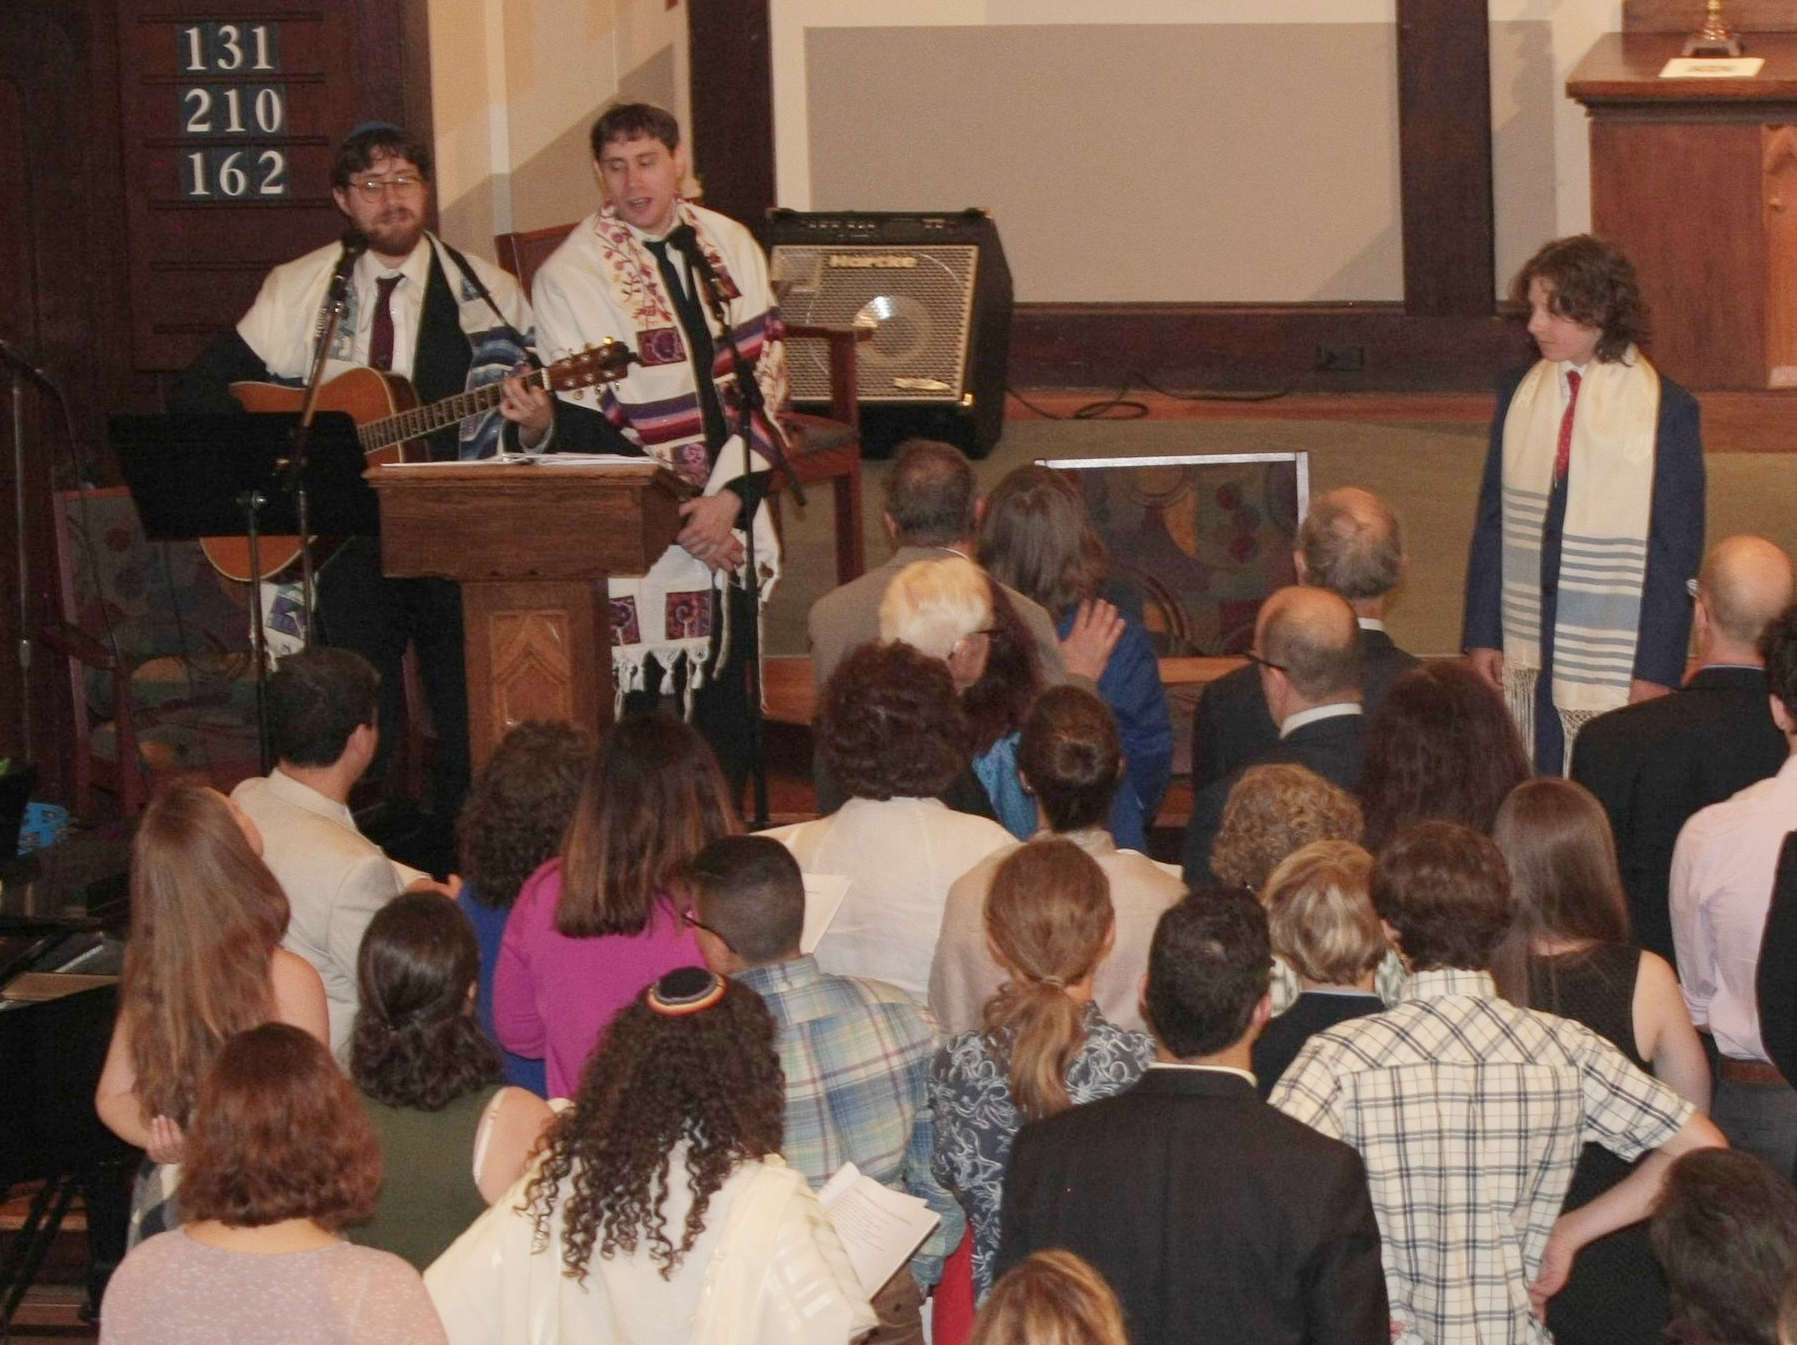 Sam and Nick Leading Bar Mitzvah service, UU Curch, Montclair, NJ